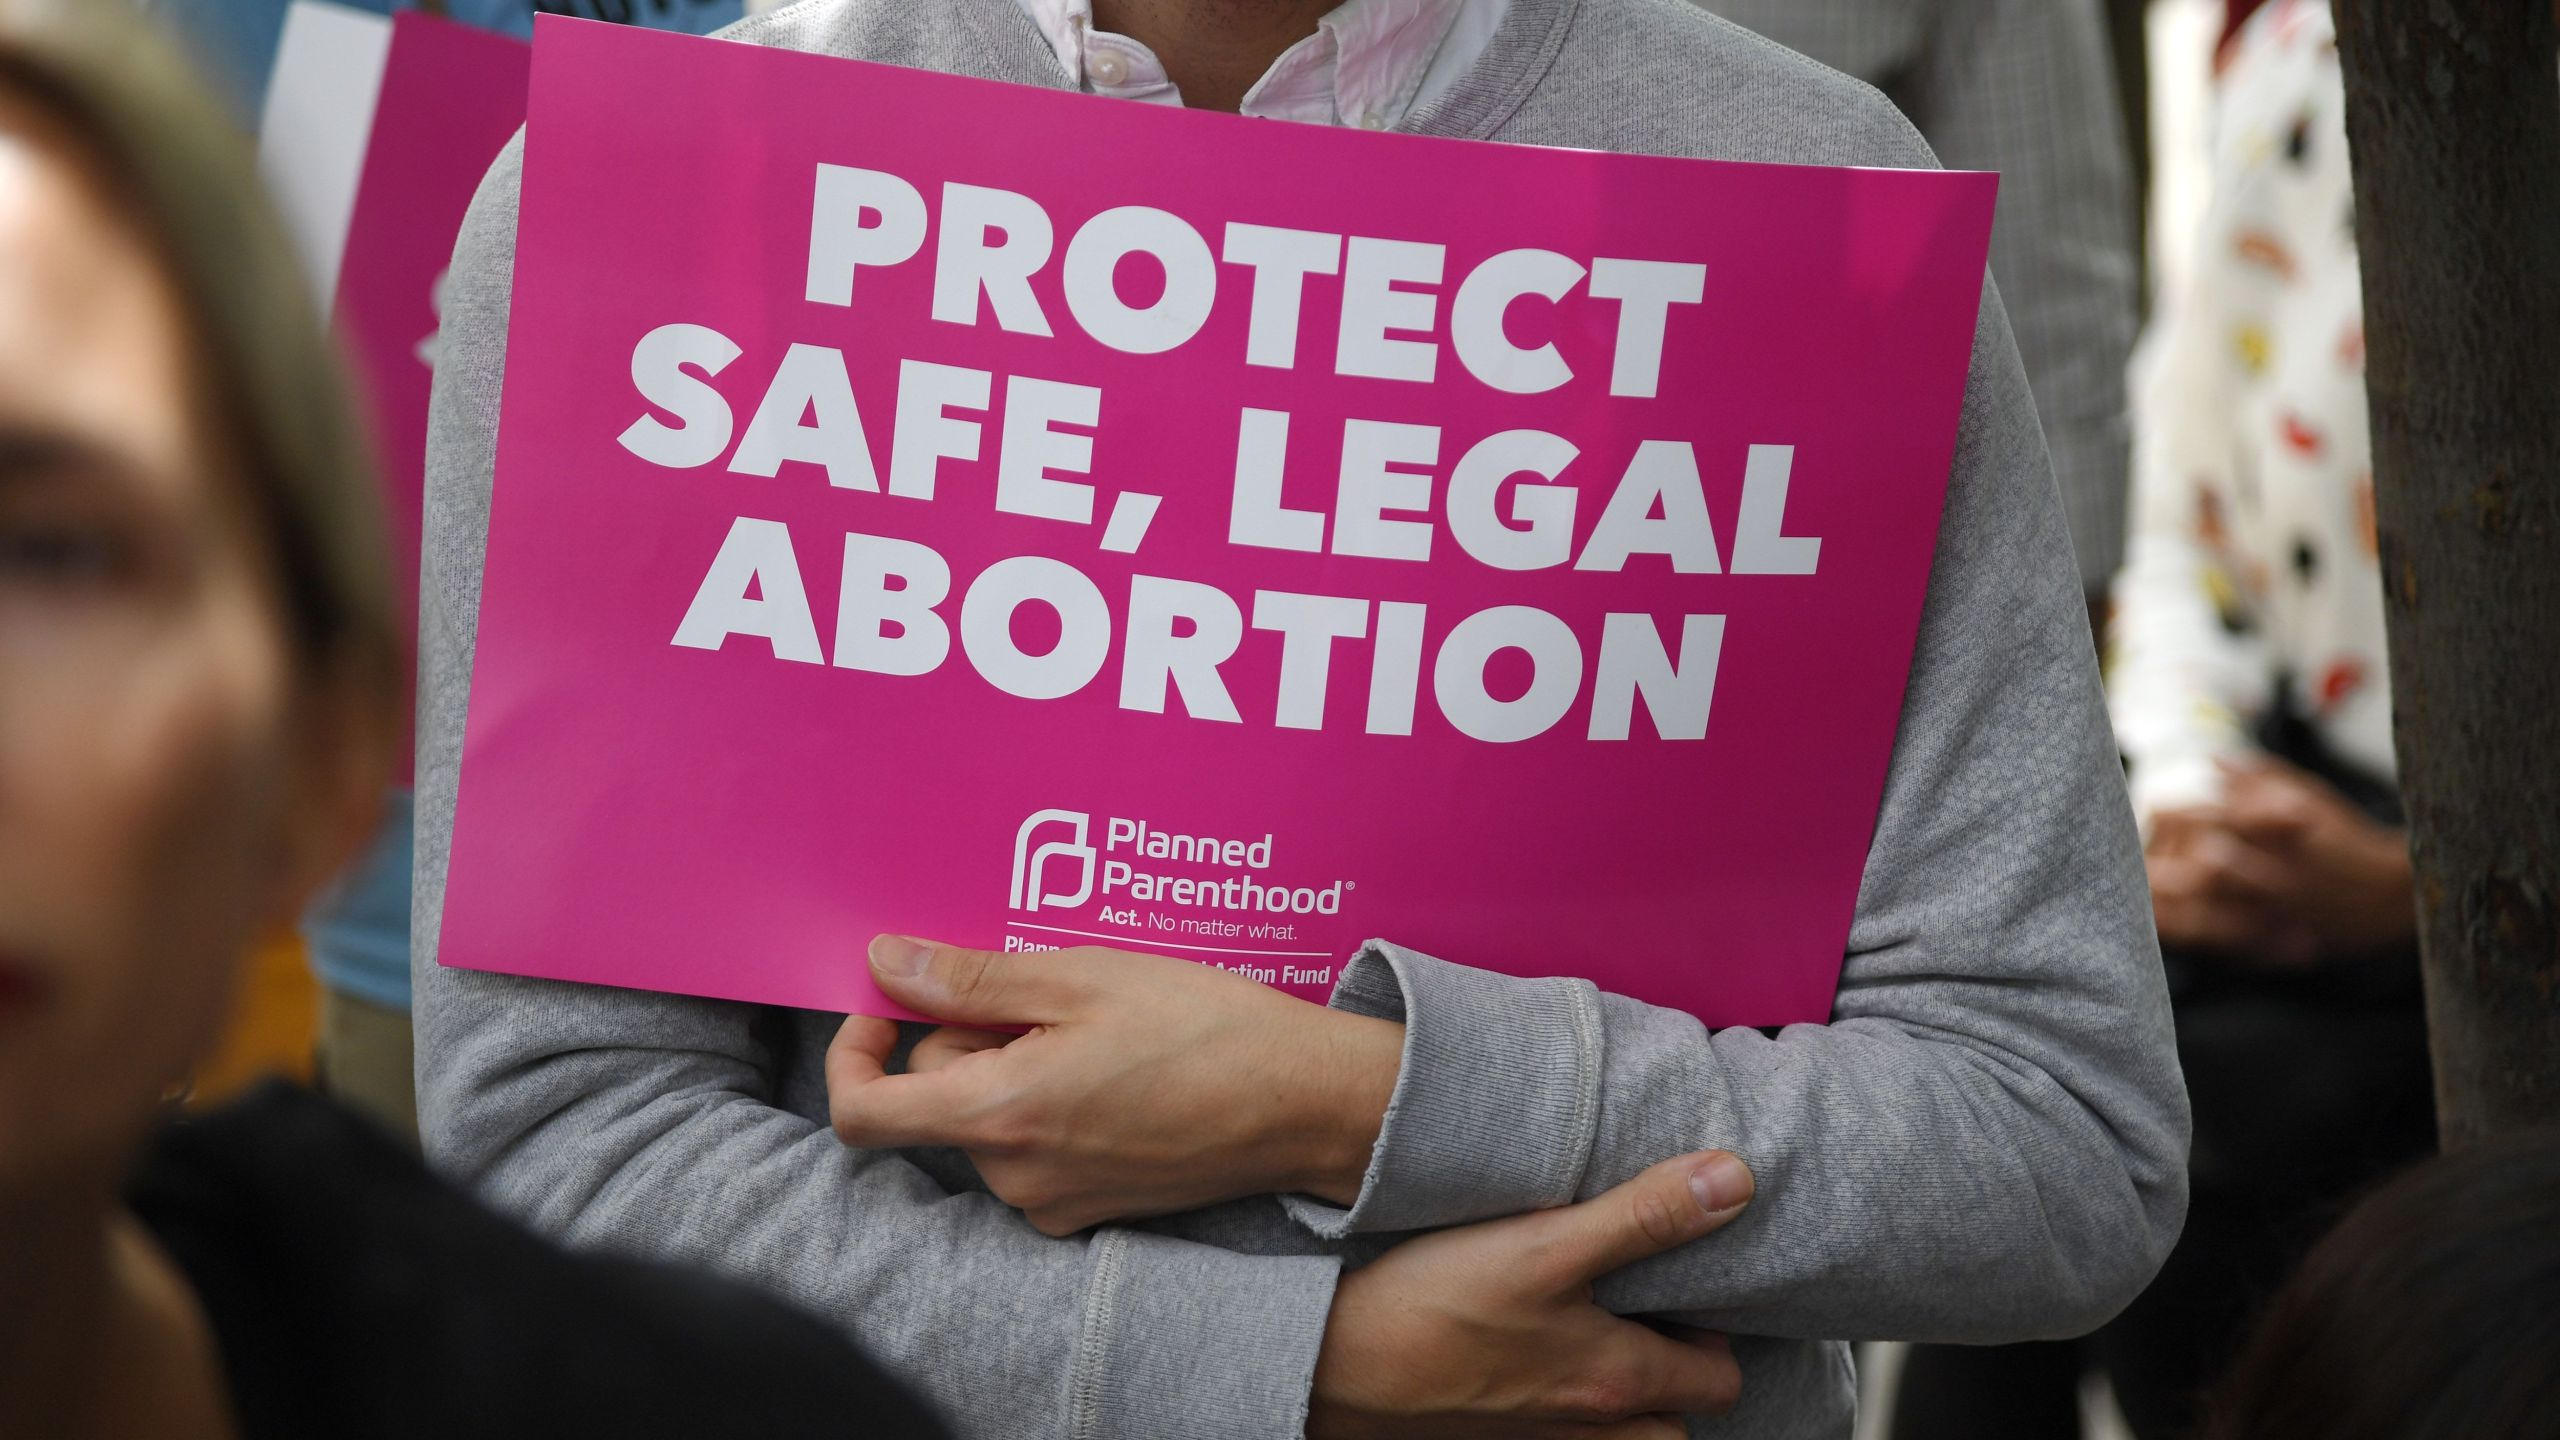 Abortion rights advocates rally to protest new restrictions on abortions, May 21, 2019, in West Hollywood. (Credit: ROBYN BECK/AFP/Getty Images)